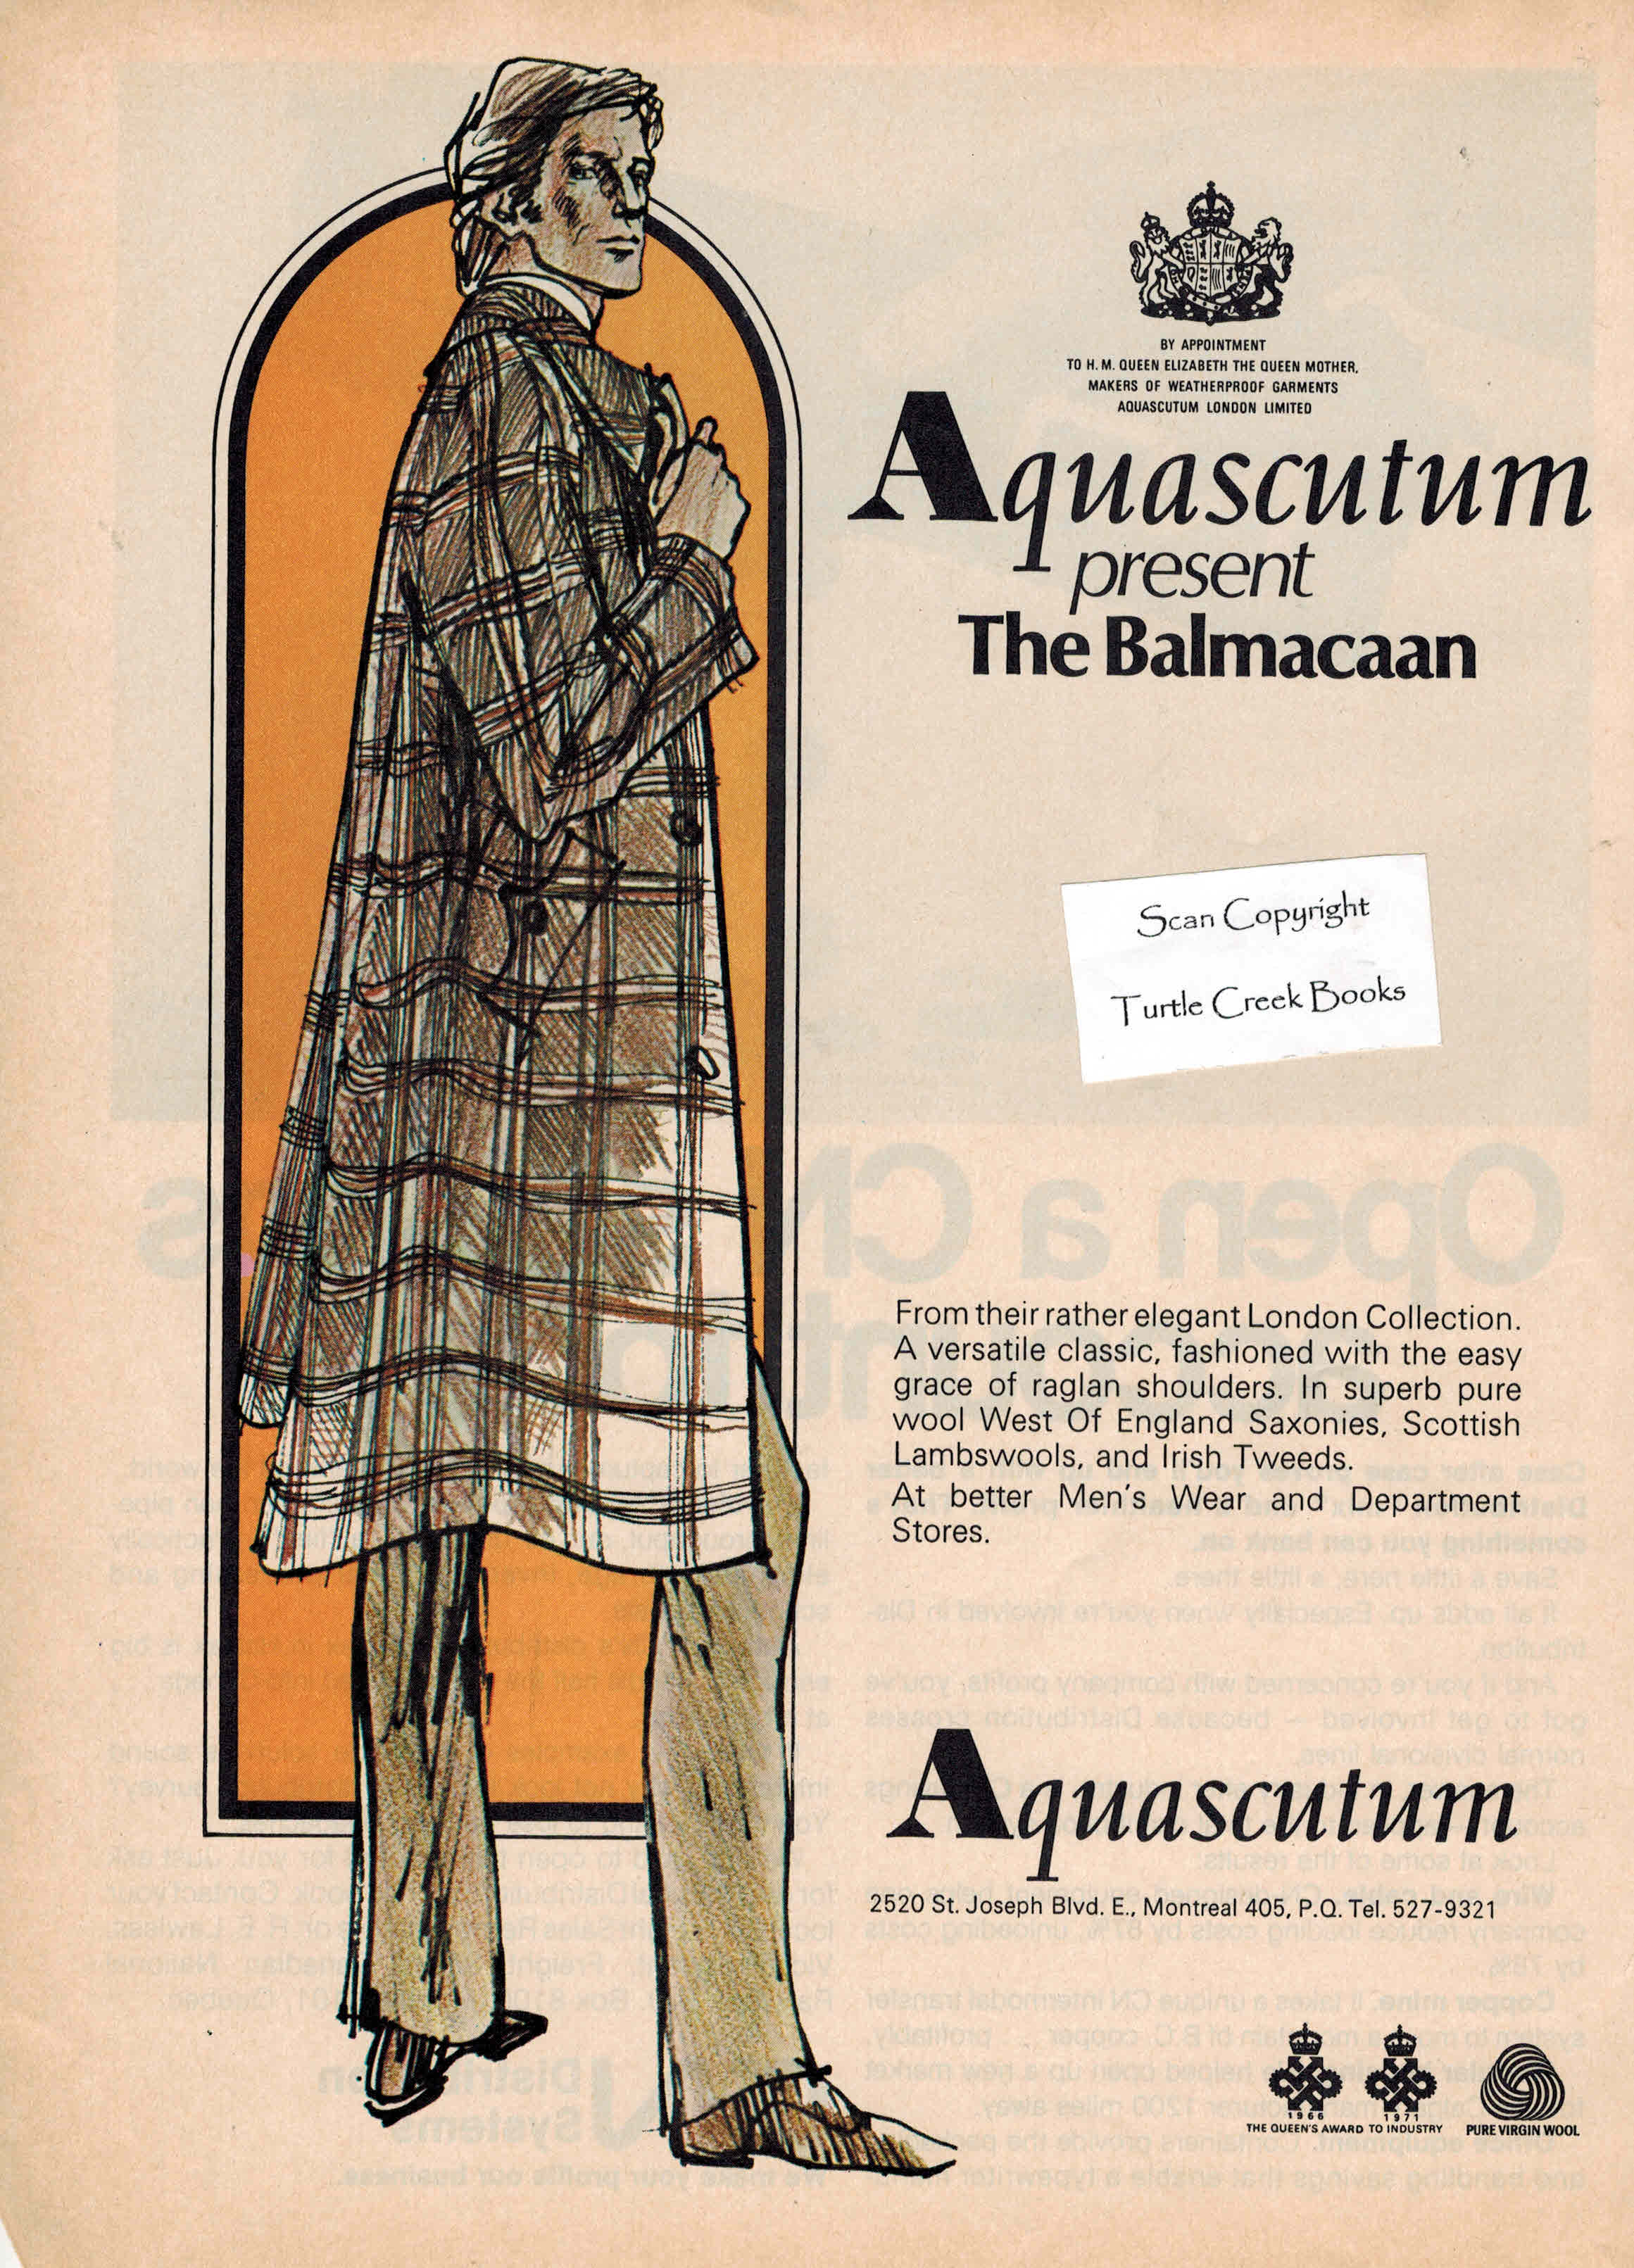 Image for Aquascutum the Balmacaan - Original Advertisement from 1972